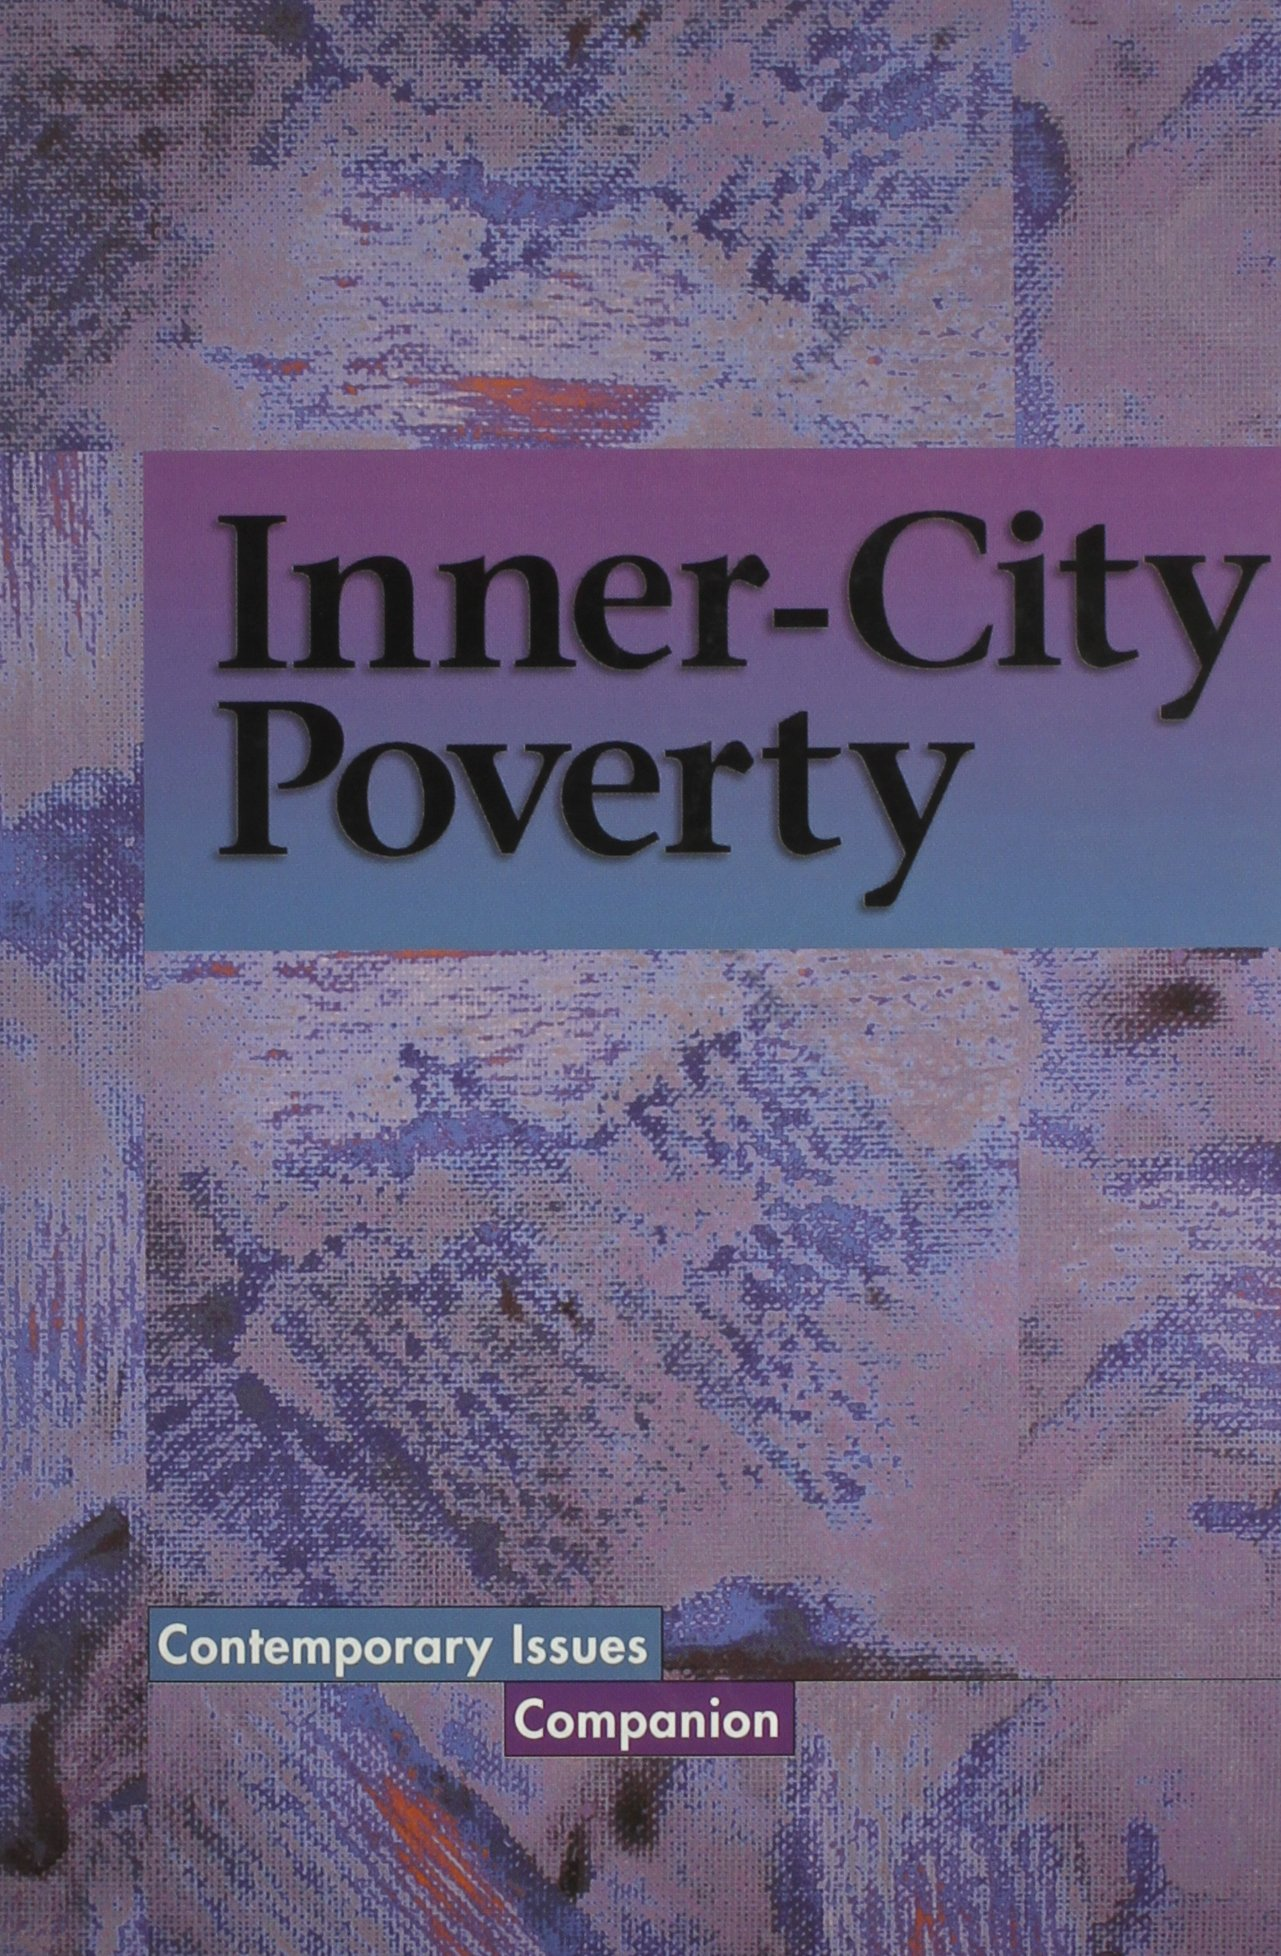 Download Contemporary Issues Companion - Inner-City Poverty (paperback edition) pdf